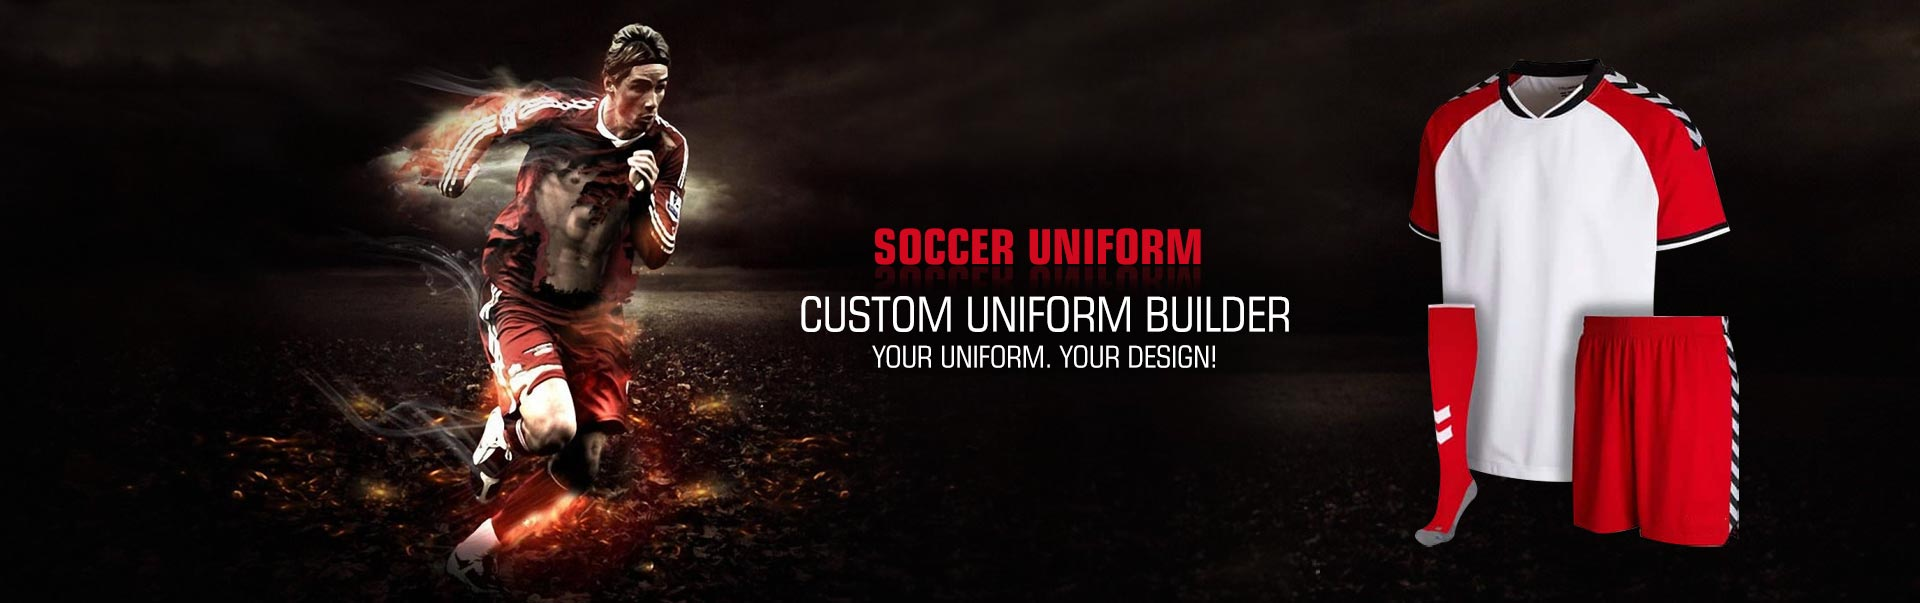 Soccer Uniform Wholesaler, Suppliers in Frisco